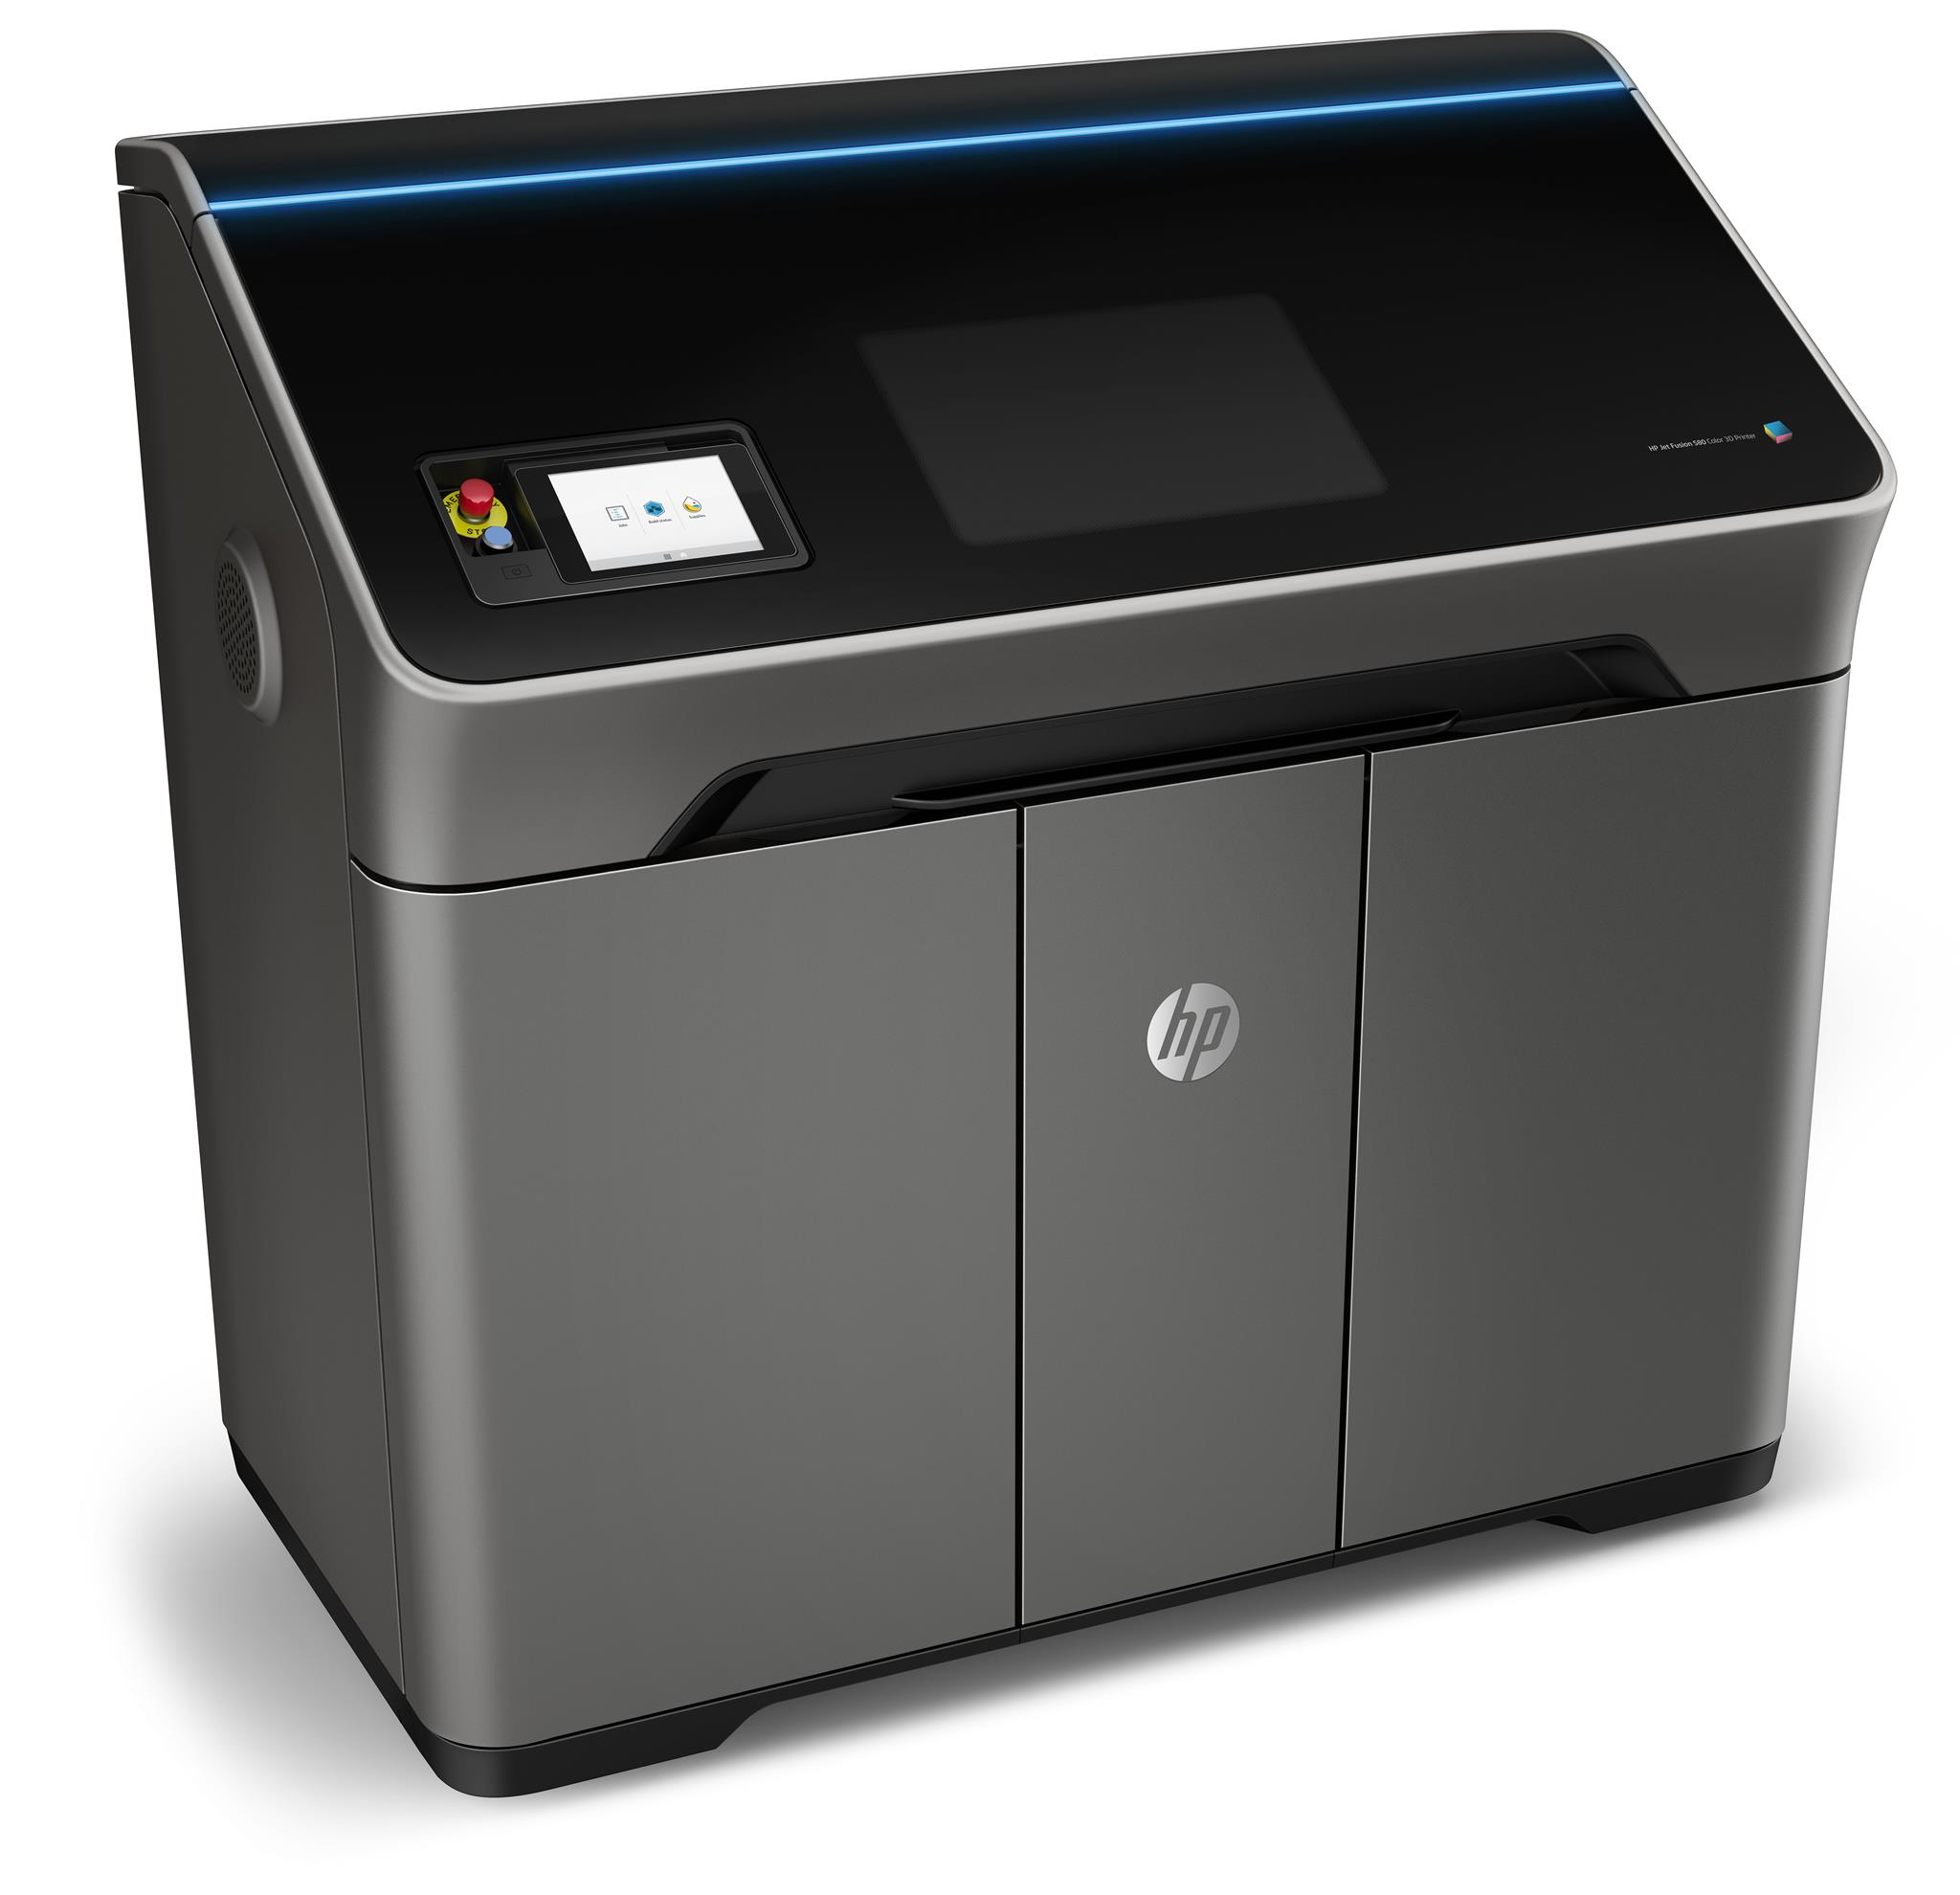 HP-Jet-Fusion-300-500-3D-Printer image